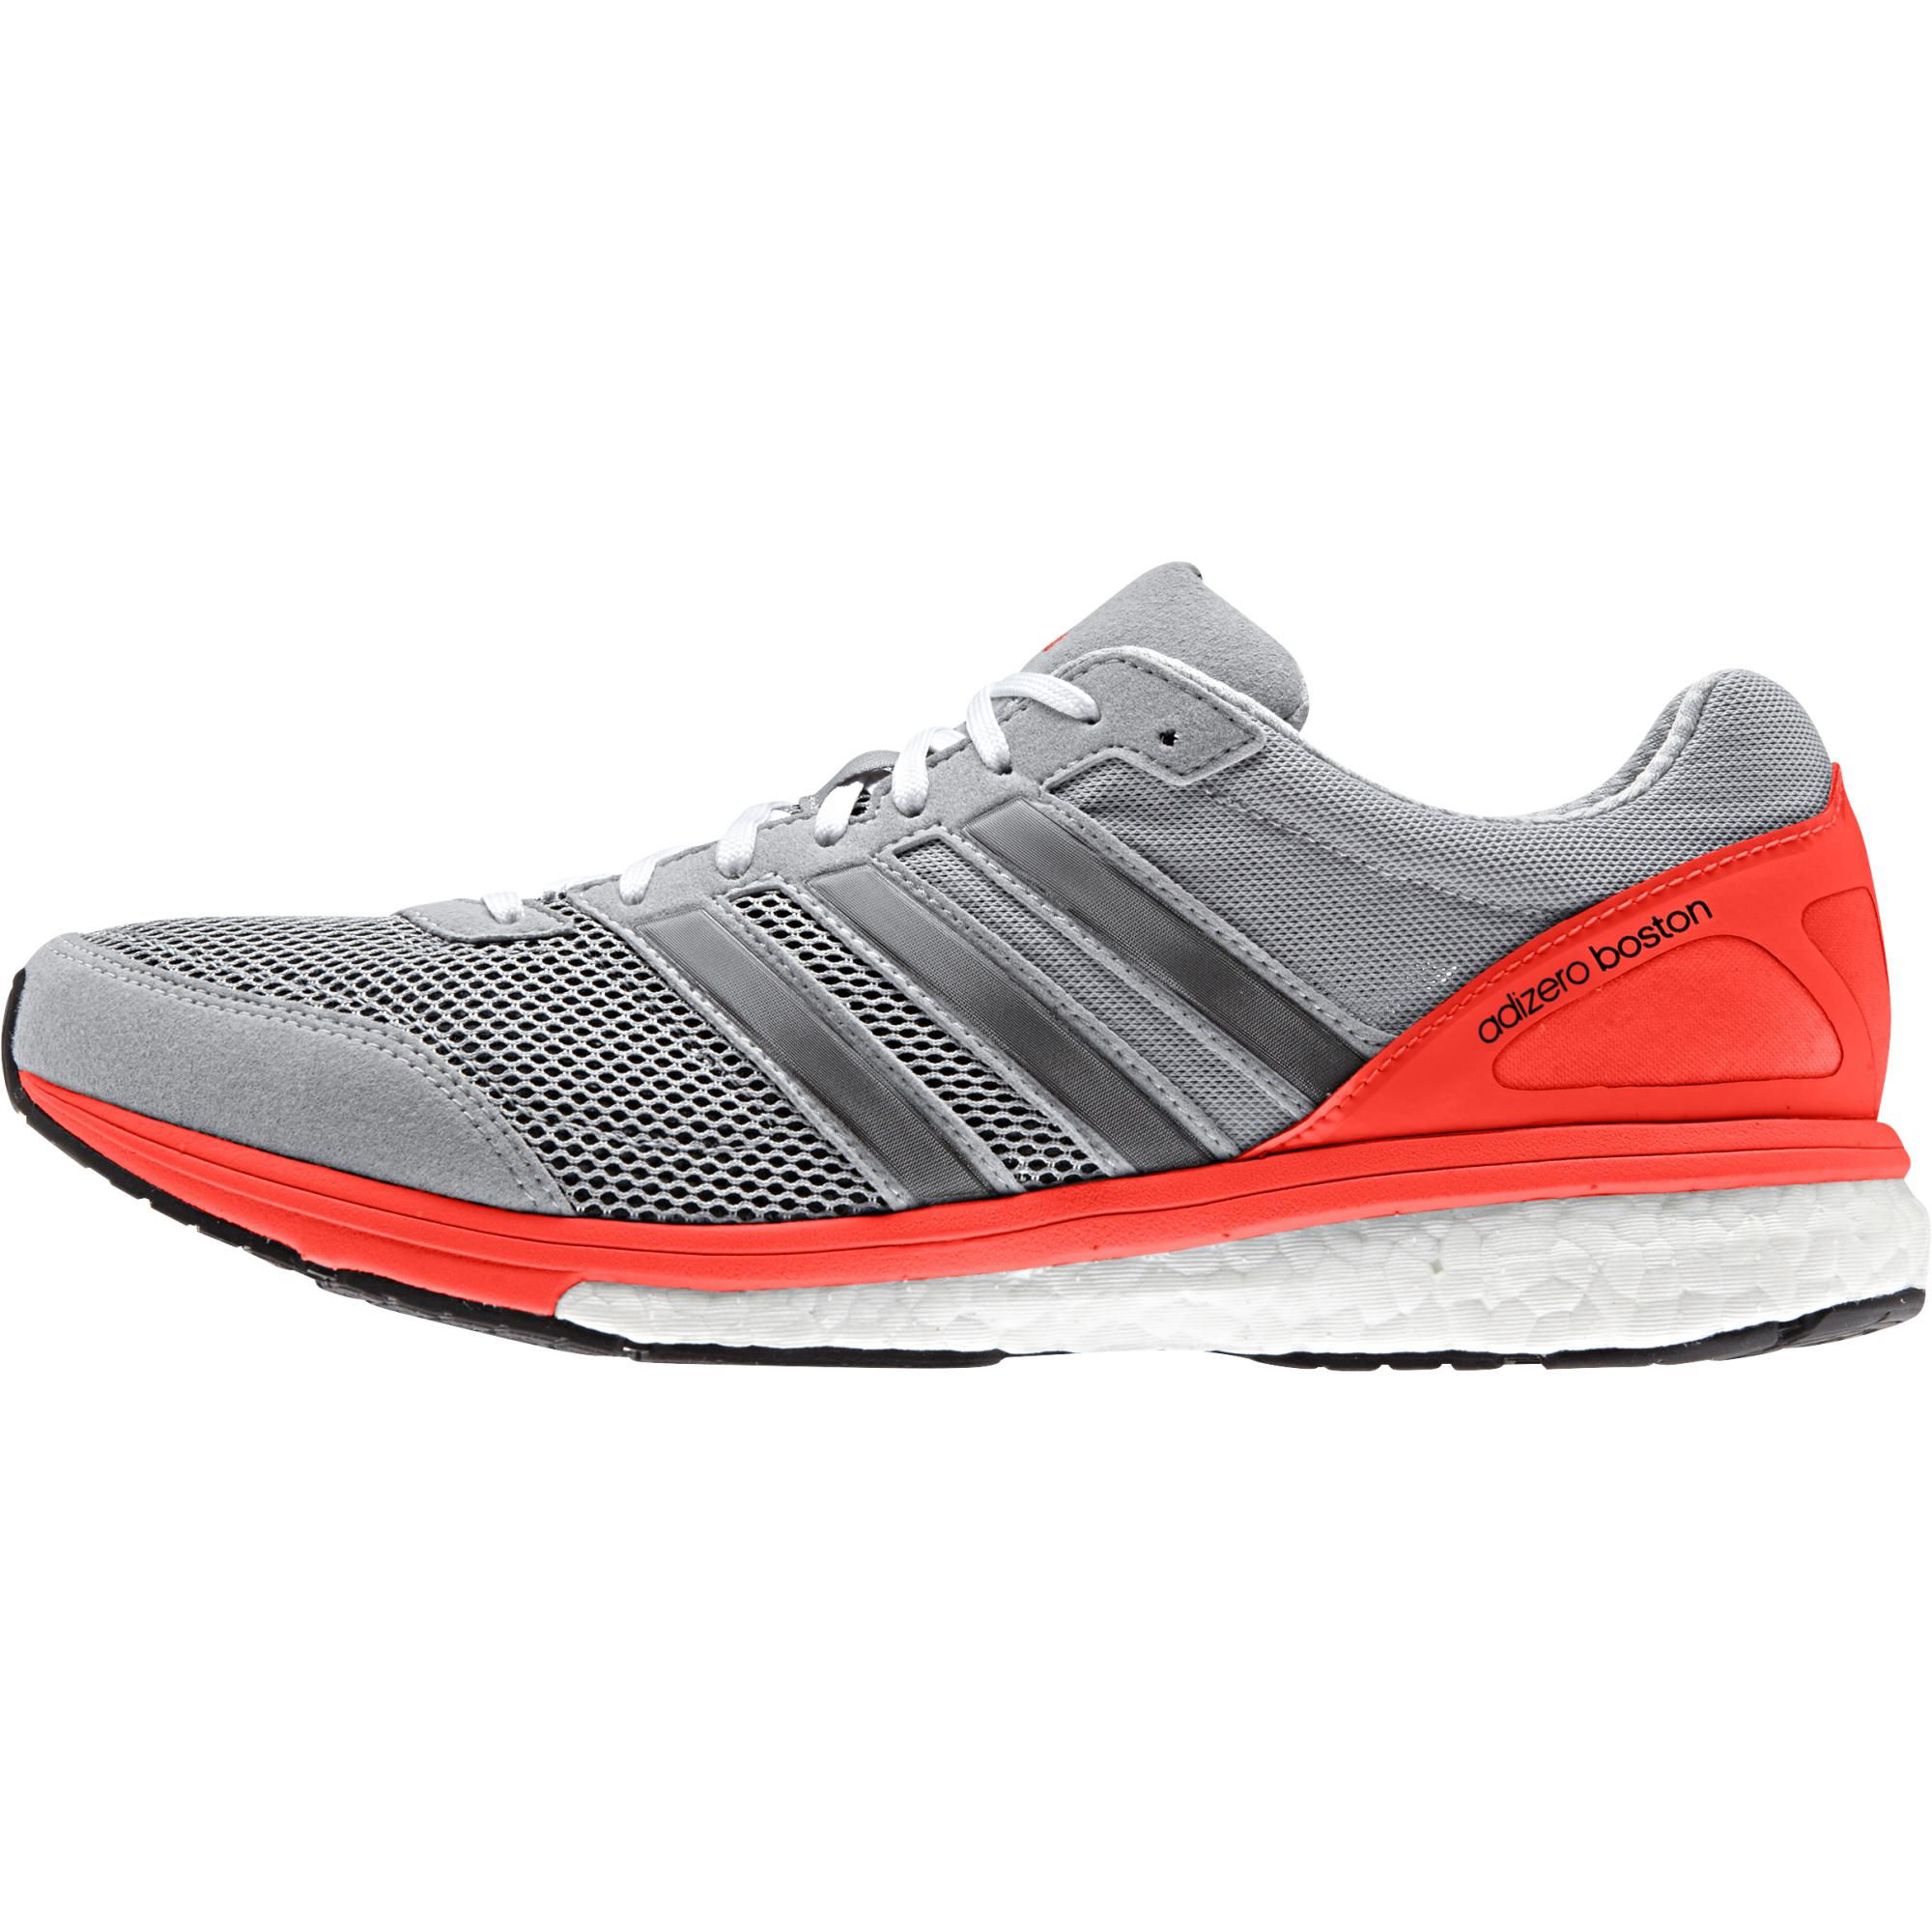 wiggle adidas adizero boston boost 5 shoes ss16 racing running shoes. Black Bedroom Furniture Sets. Home Design Ideas